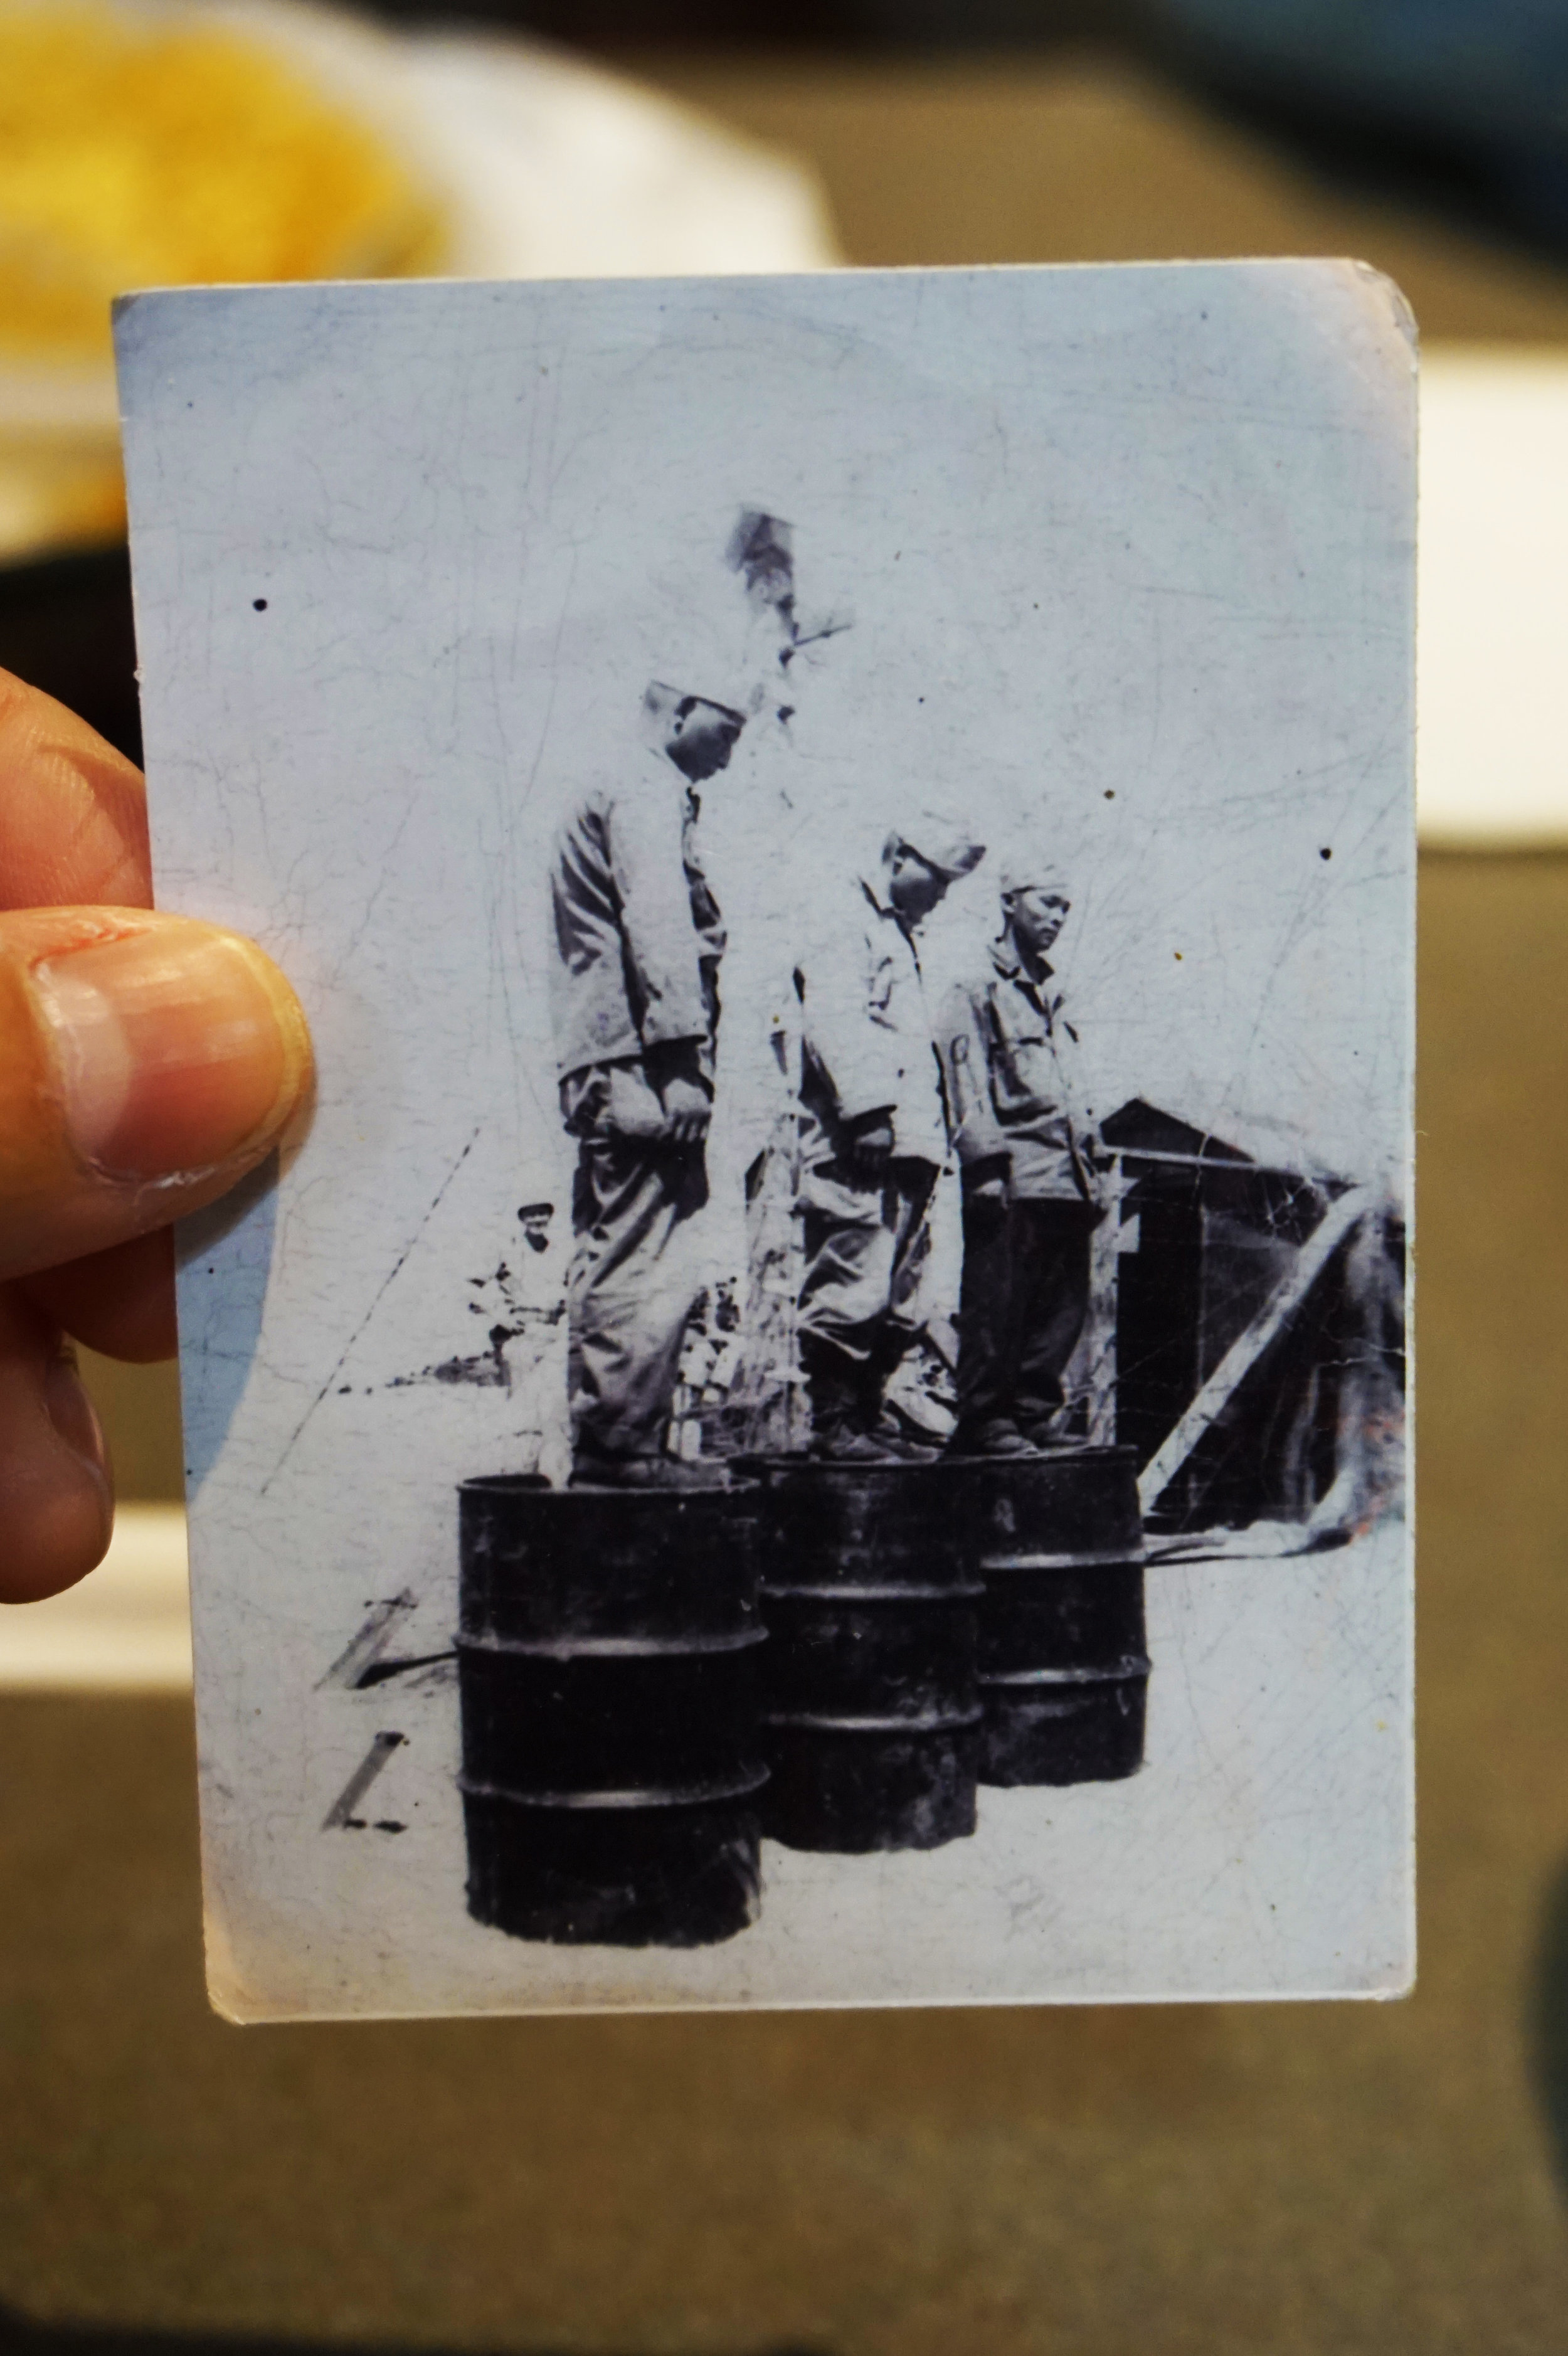 A picture George kept in his wallet of Japanese soldiers standing on oil barrels